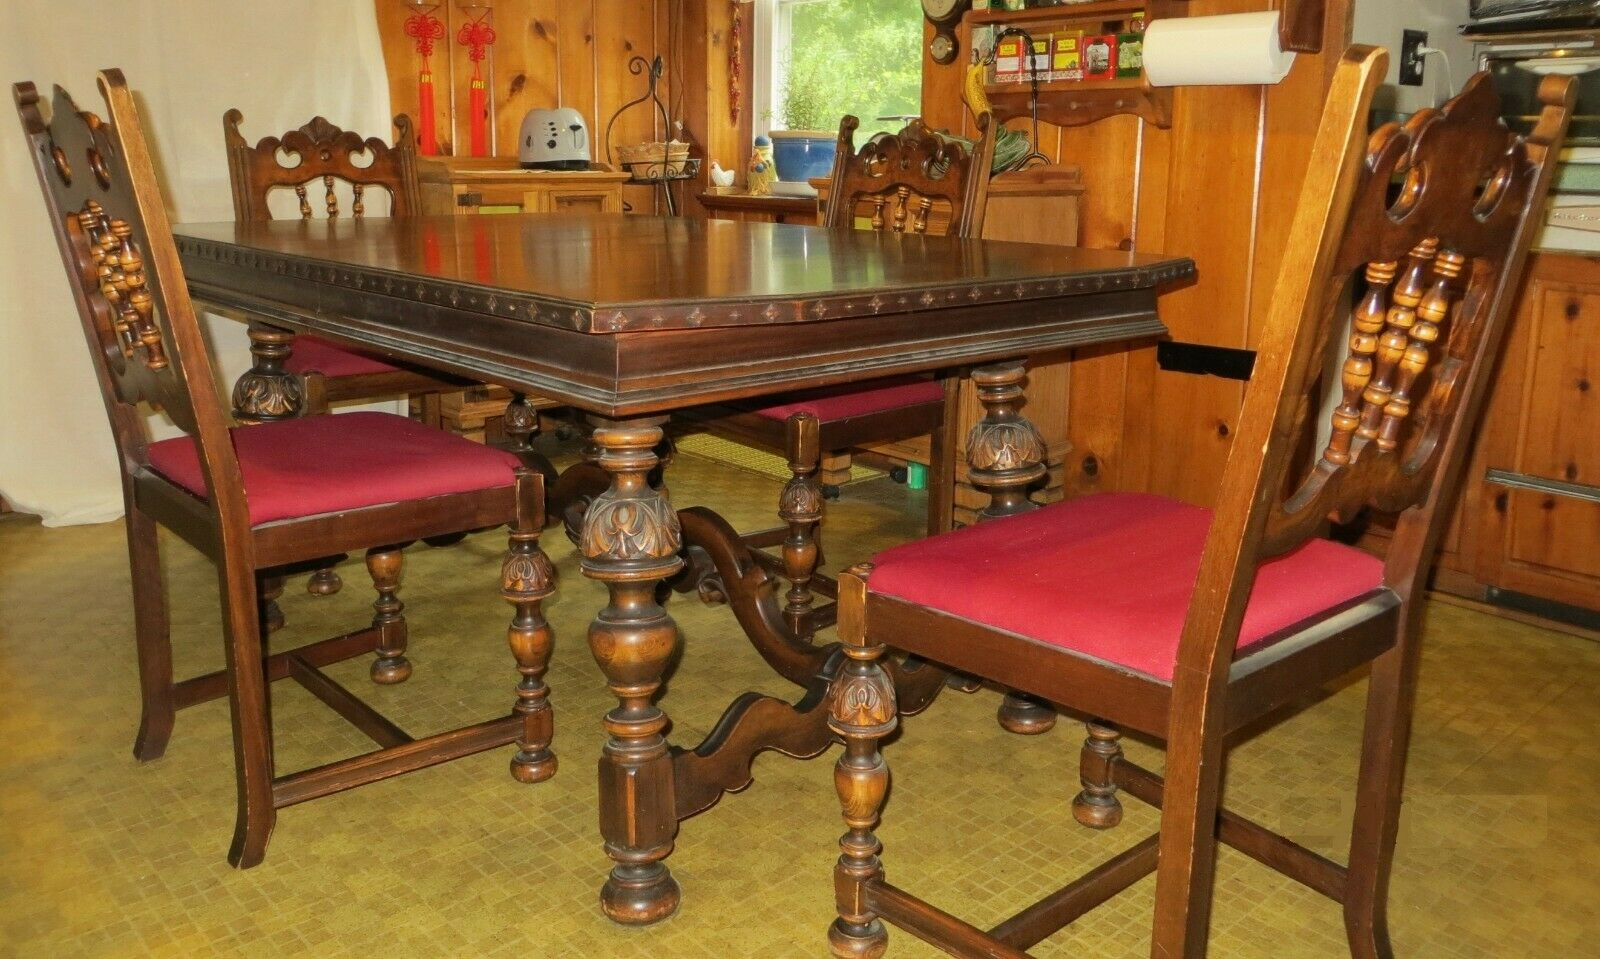 Stupendous Berkey Gay Antique Dining Table And 4 Chairs 800 00 Download Free Architecture Designs Pushbritishbridgeorg